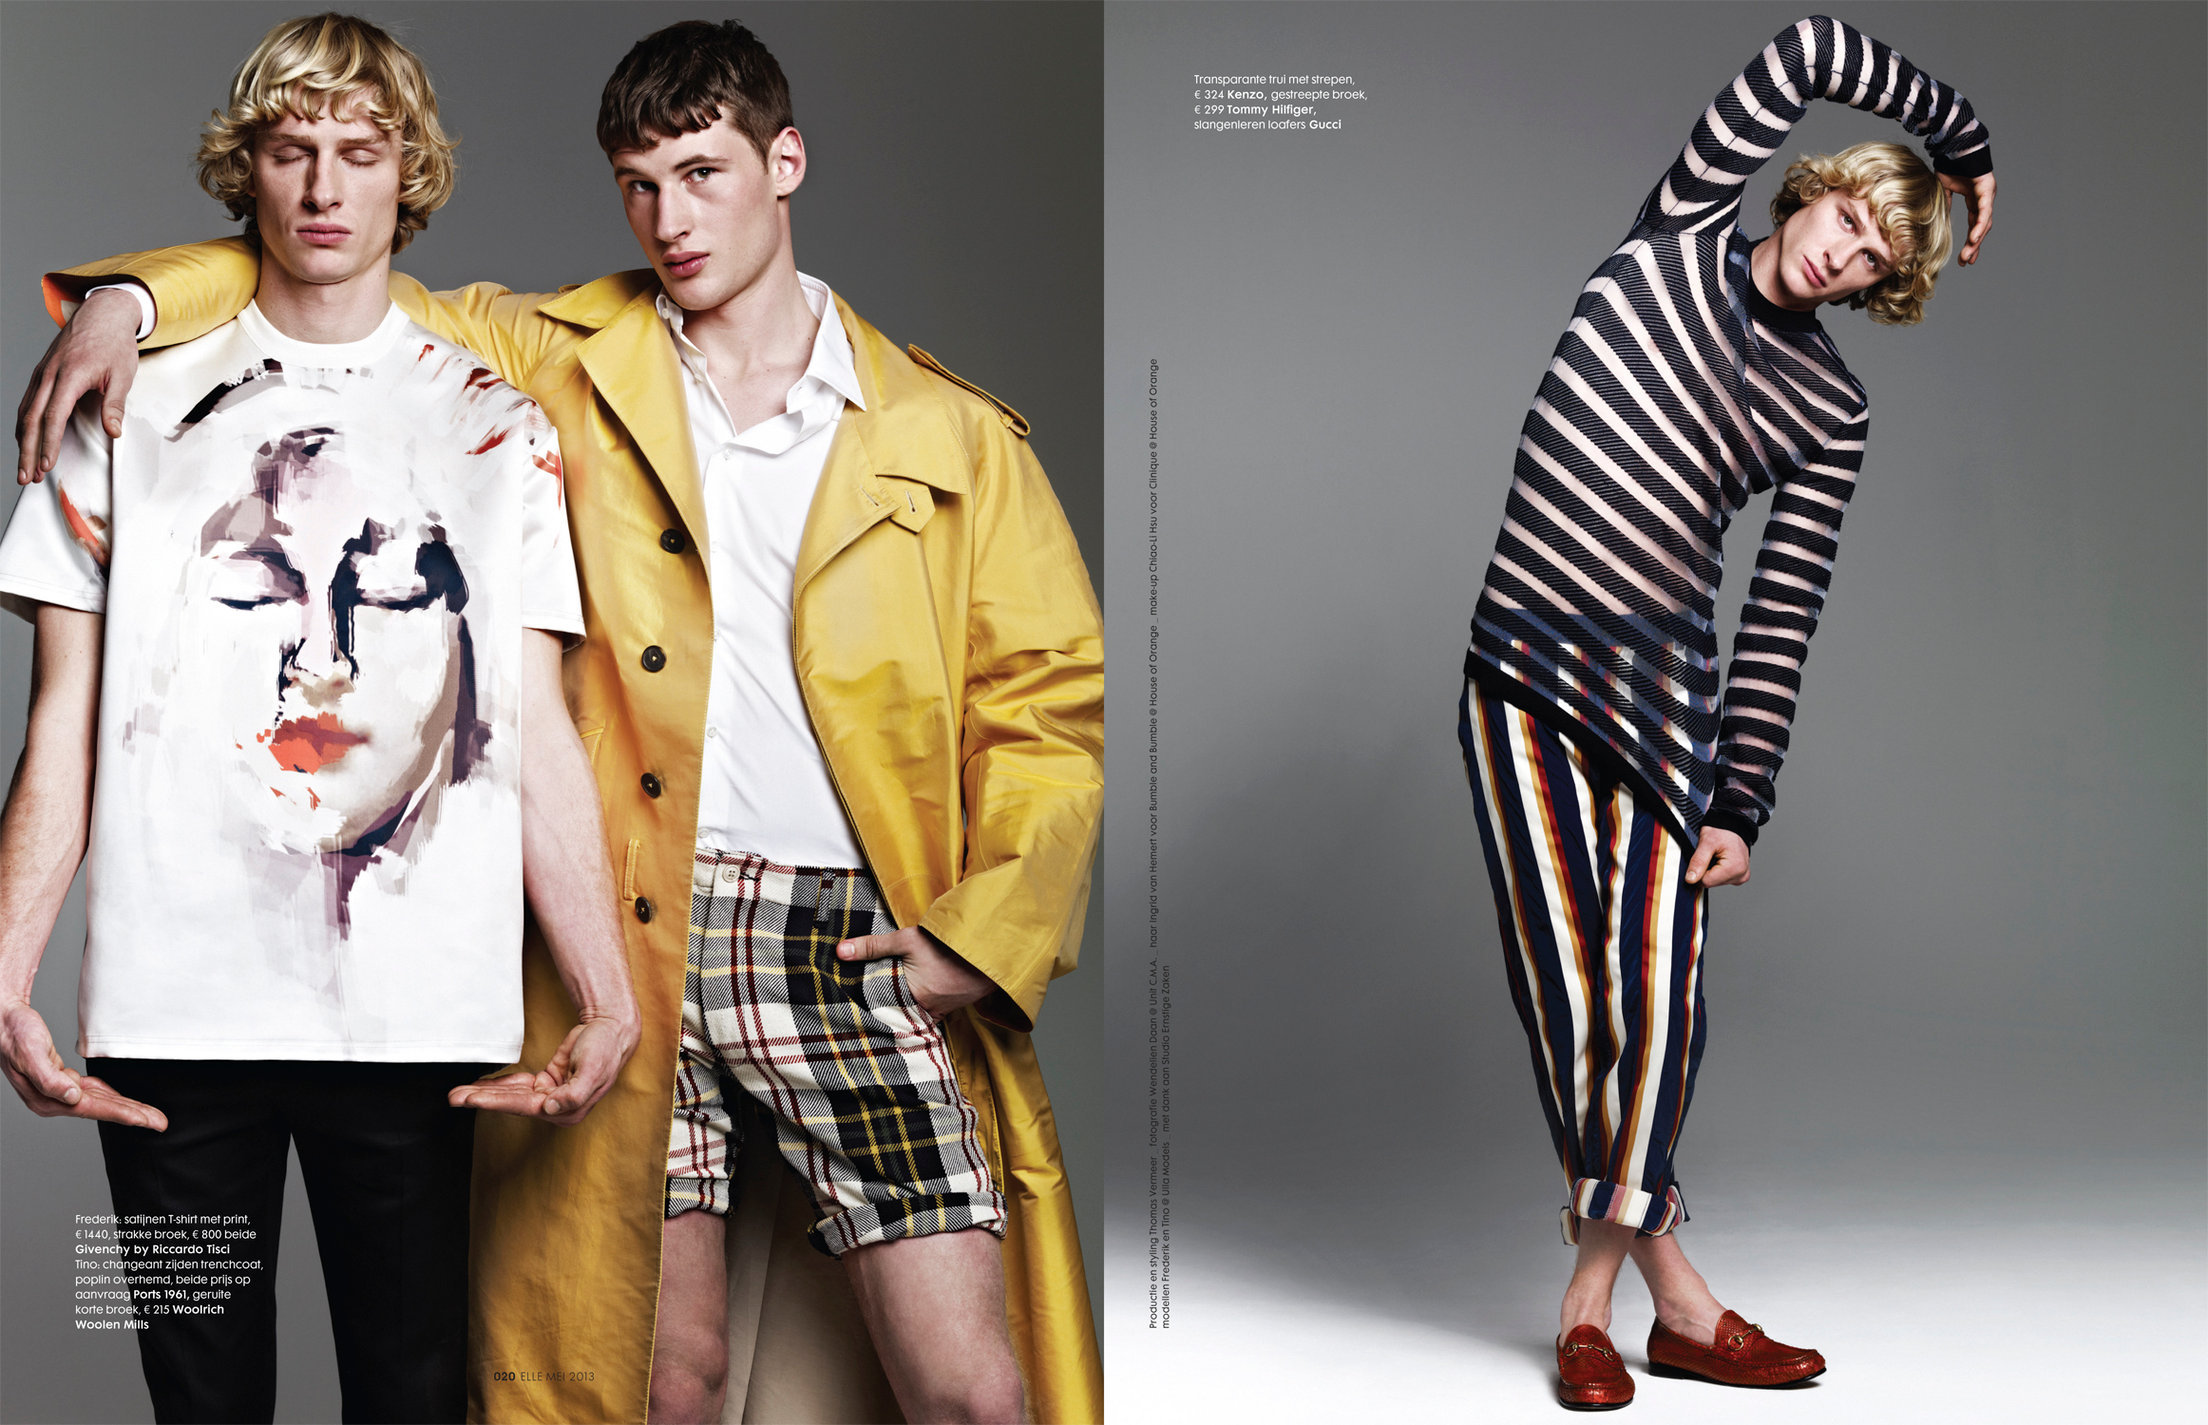 ELLE NL 2013 with Tino Zidane and Fredrik Meijnen fashion editor Thomas Vermeer